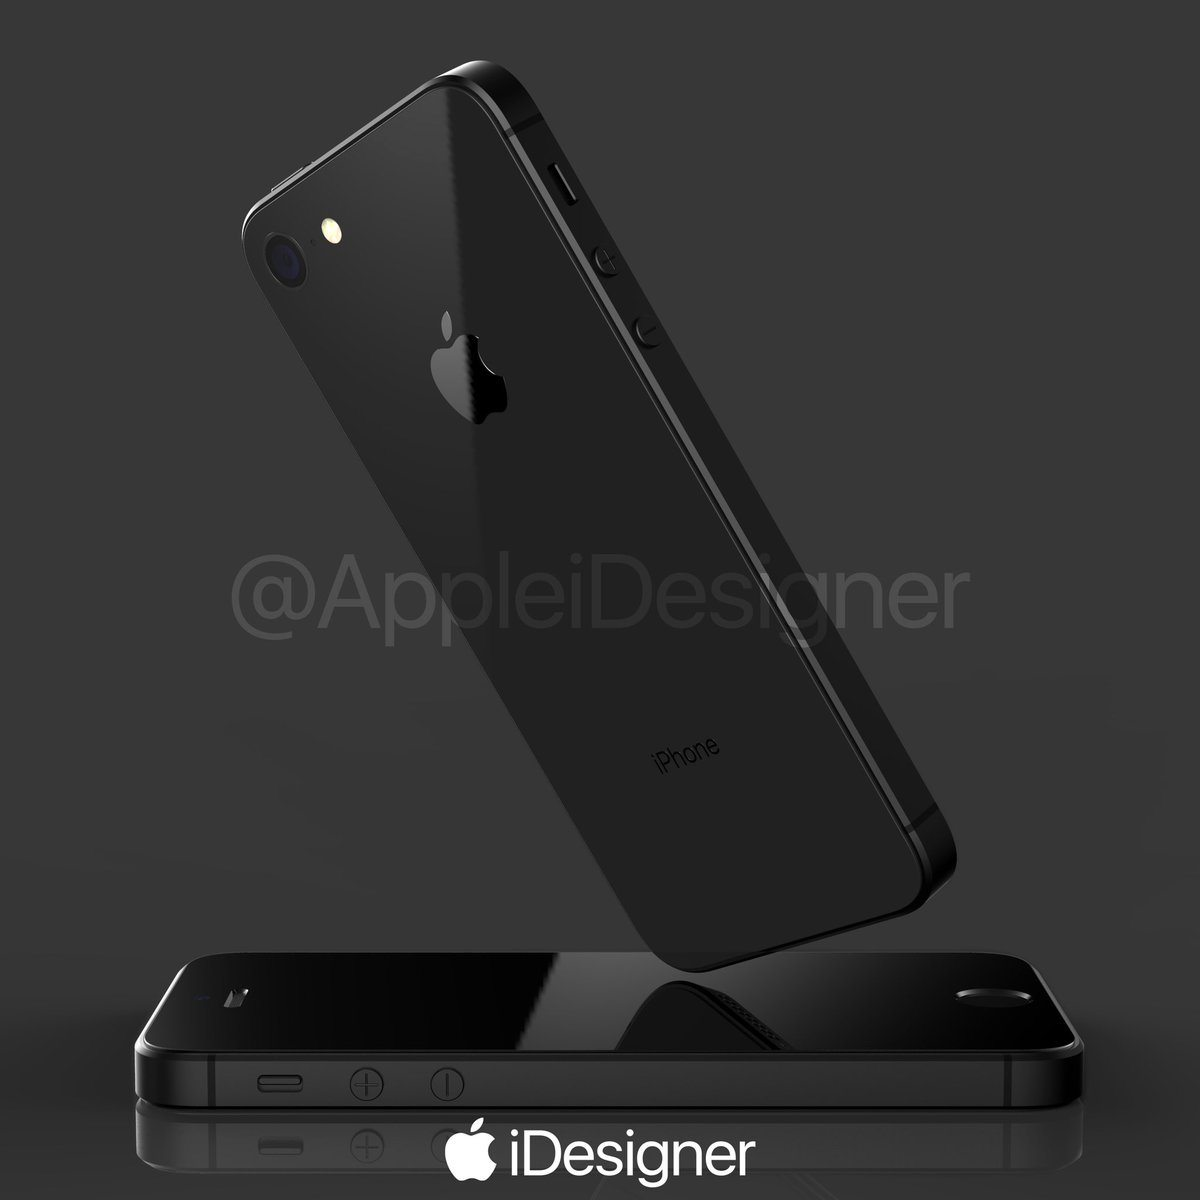 New Renders Visualize Apple's Rumored iPhone SE 2